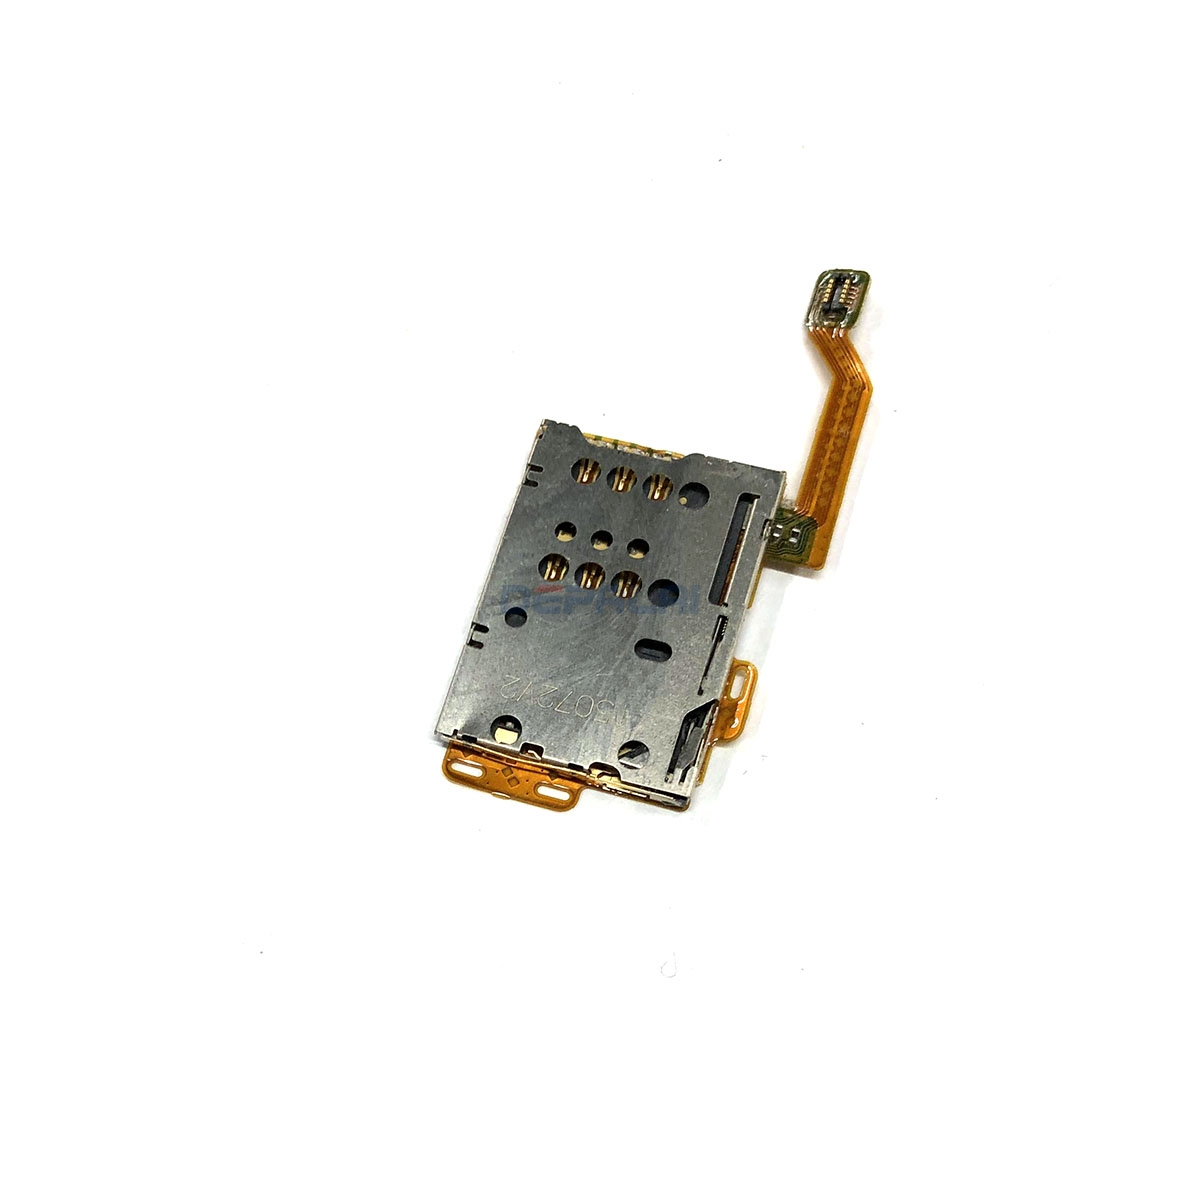 Sim Card Slot Tray Reader Holder Socket With Flex Cable Replacement Parts For Nokia  C7 C7-00